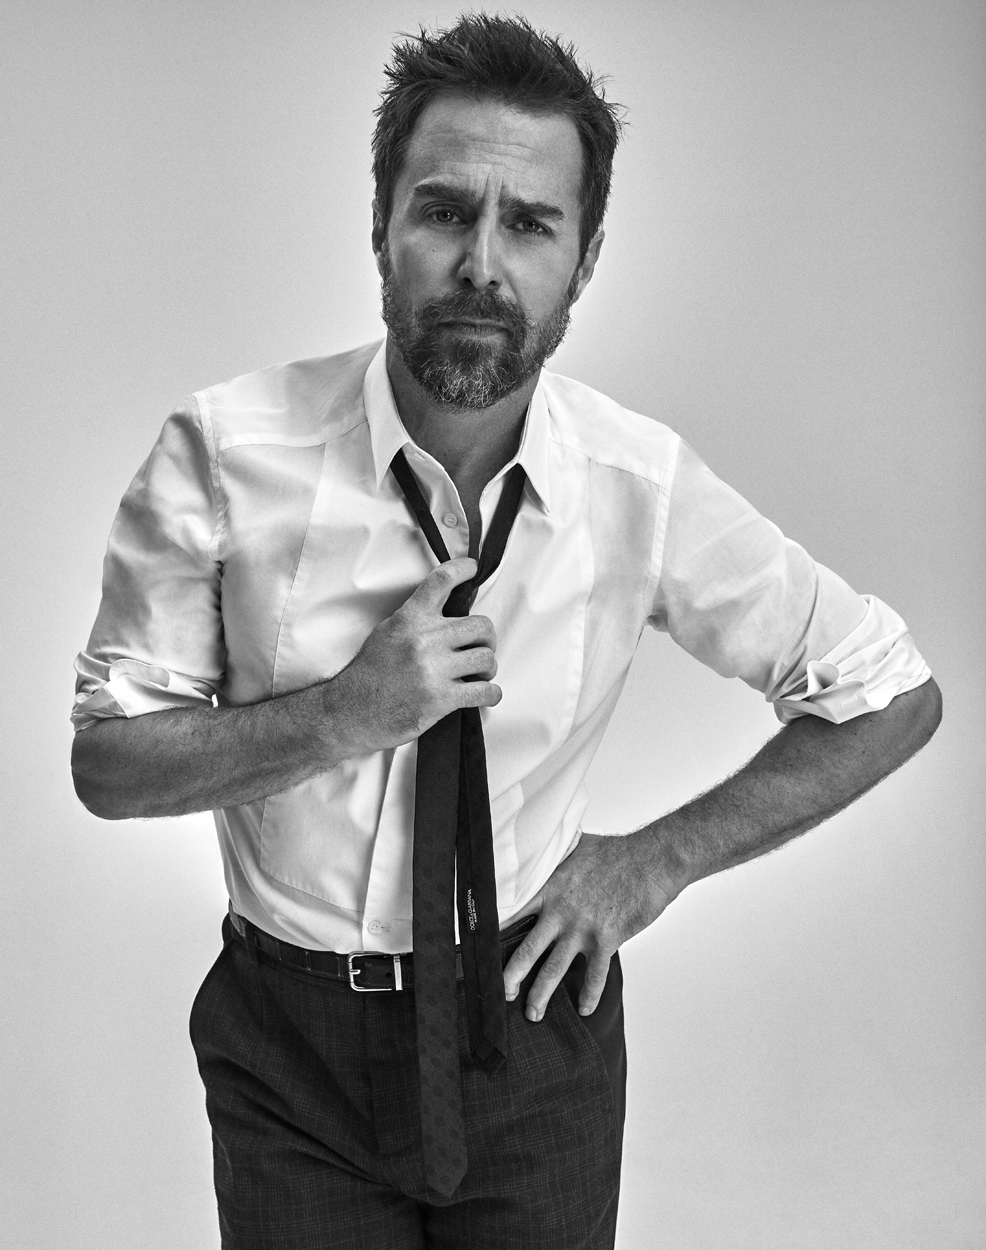 Celebrity Photographer Michael Schwartz: Sam Rockwell for Icon Magazine cover